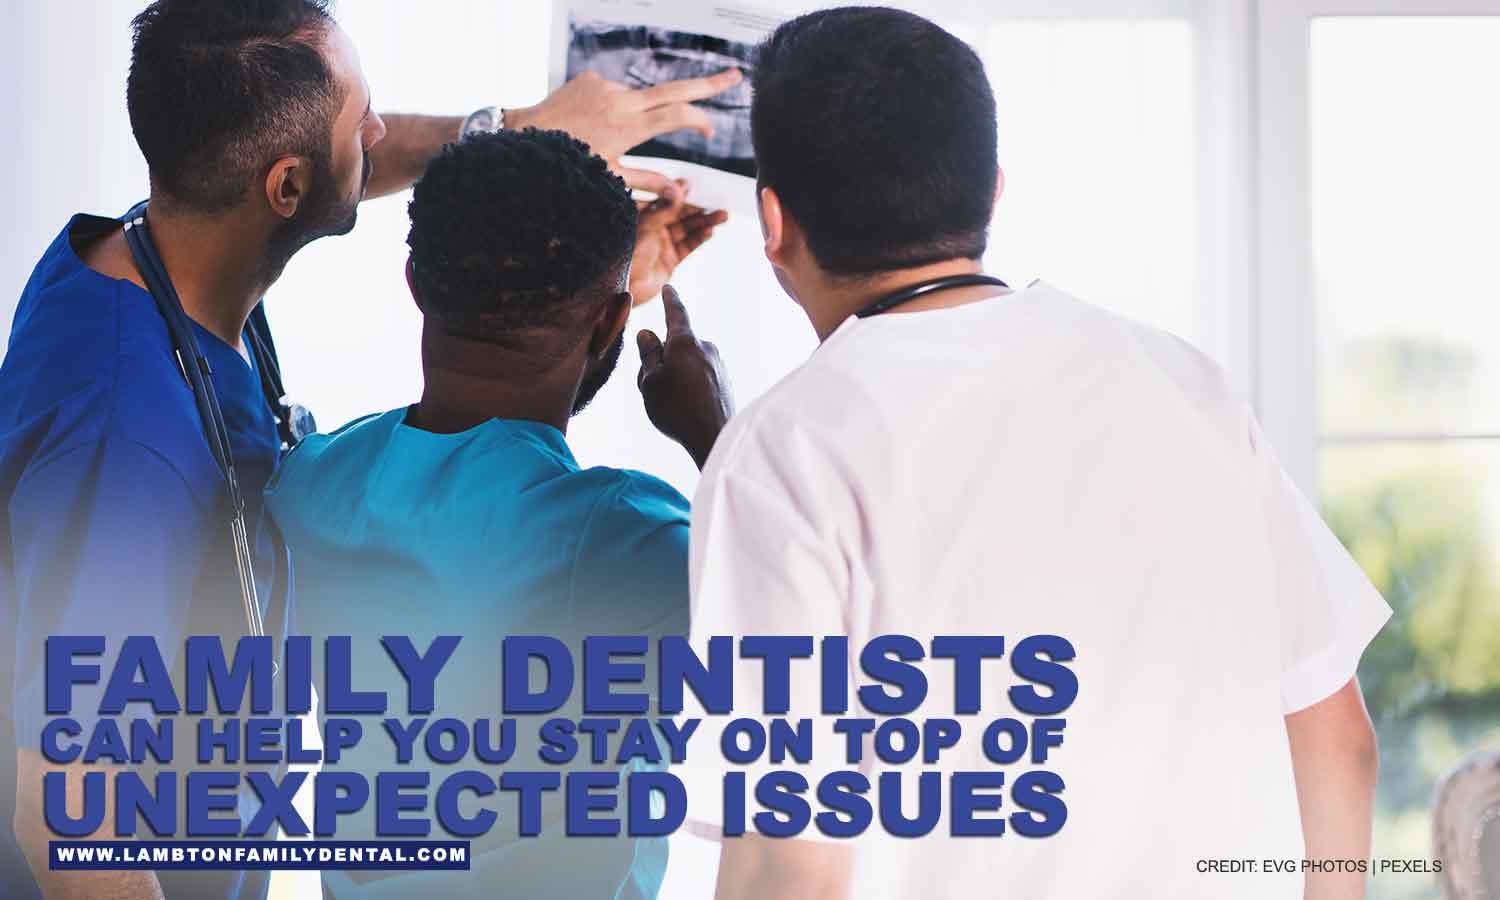 Family dentists can help